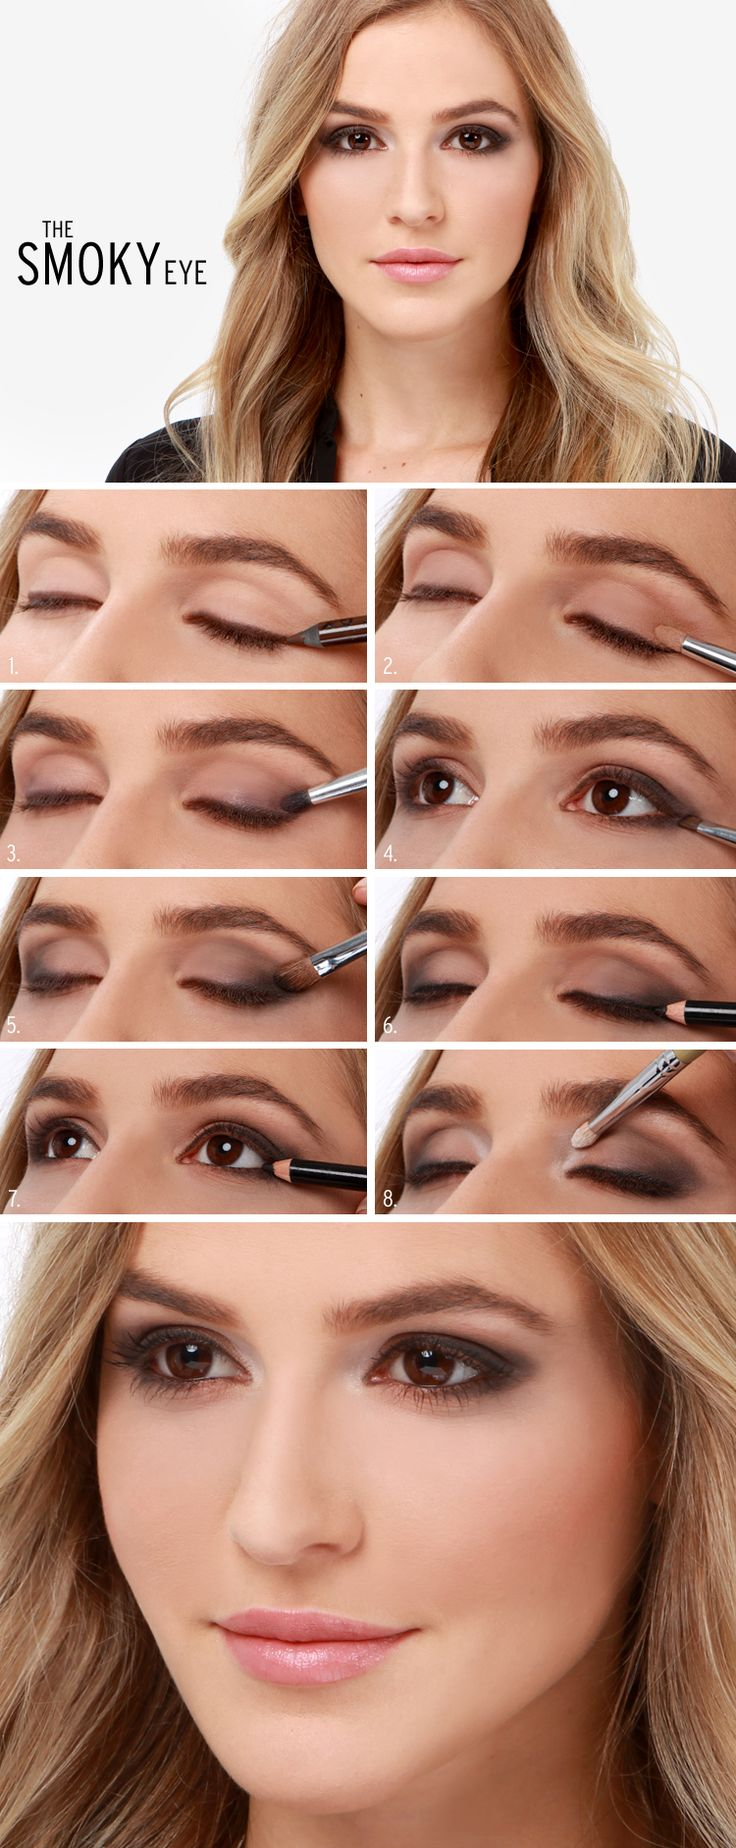 The Smoky Eye Makeup Tutorial